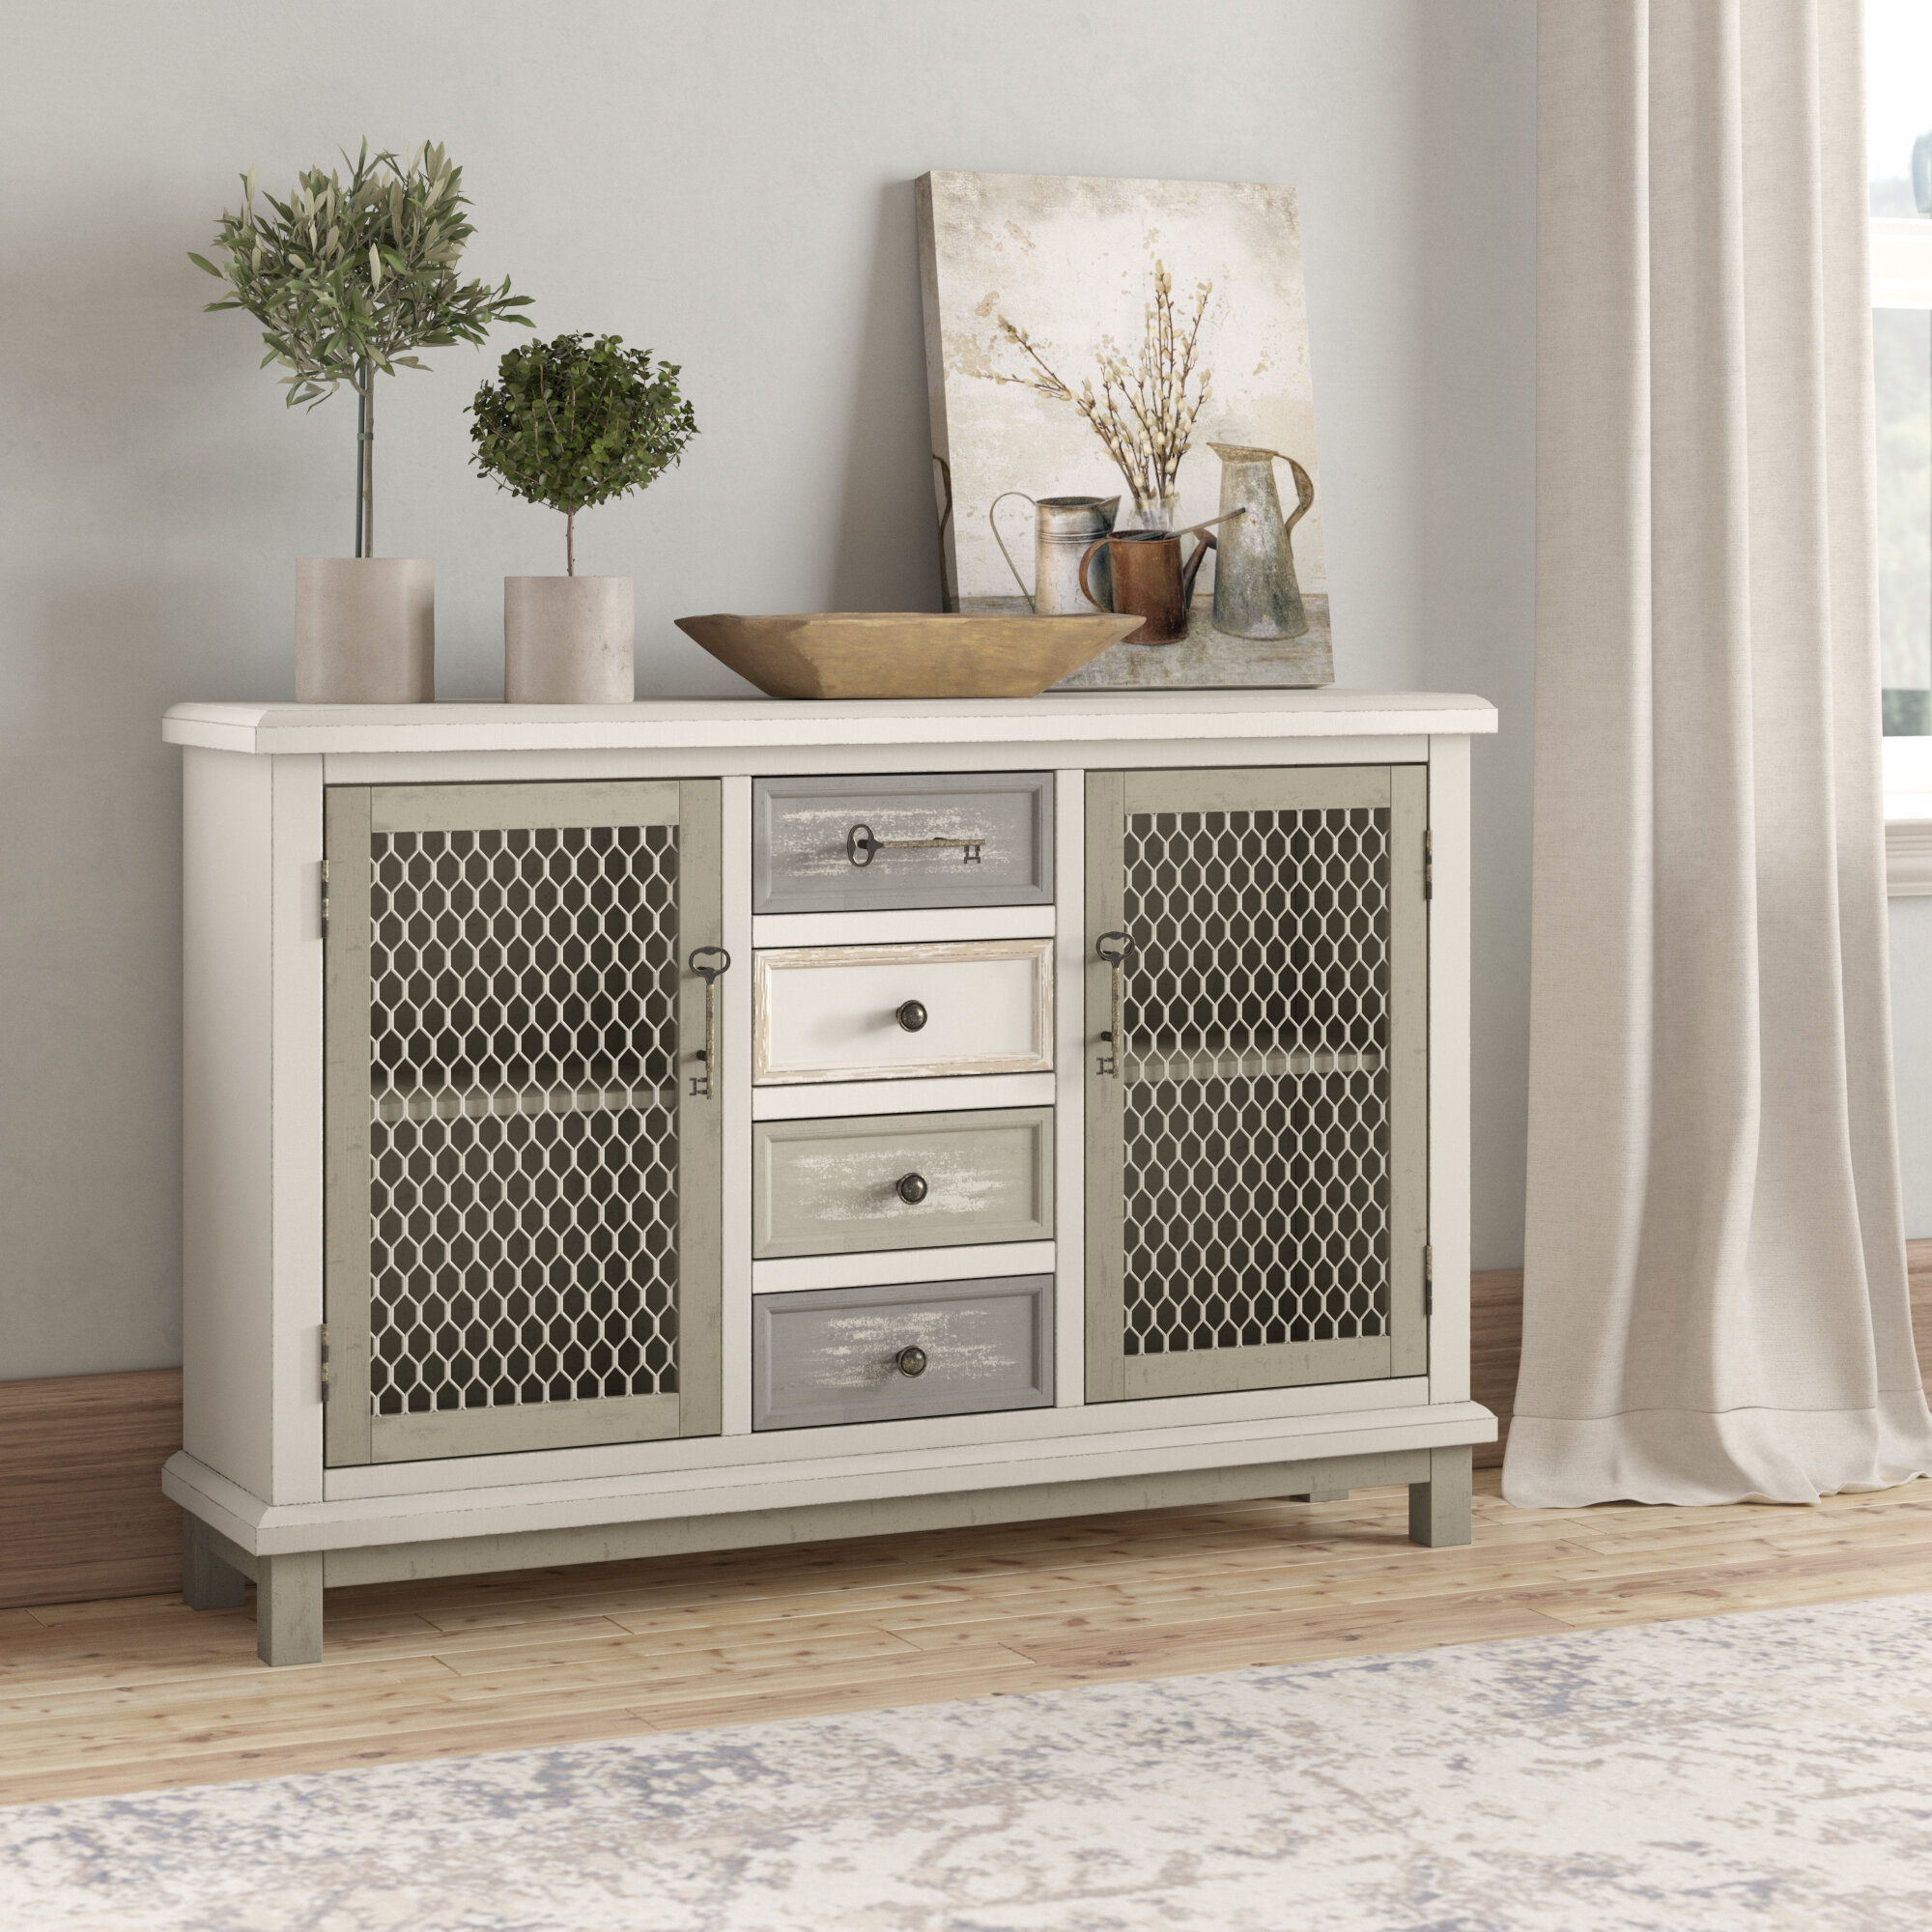 Kobe 2 Door Sideboard | Wayfair regarding Line Geo Credenzas (Image 19 of 30)